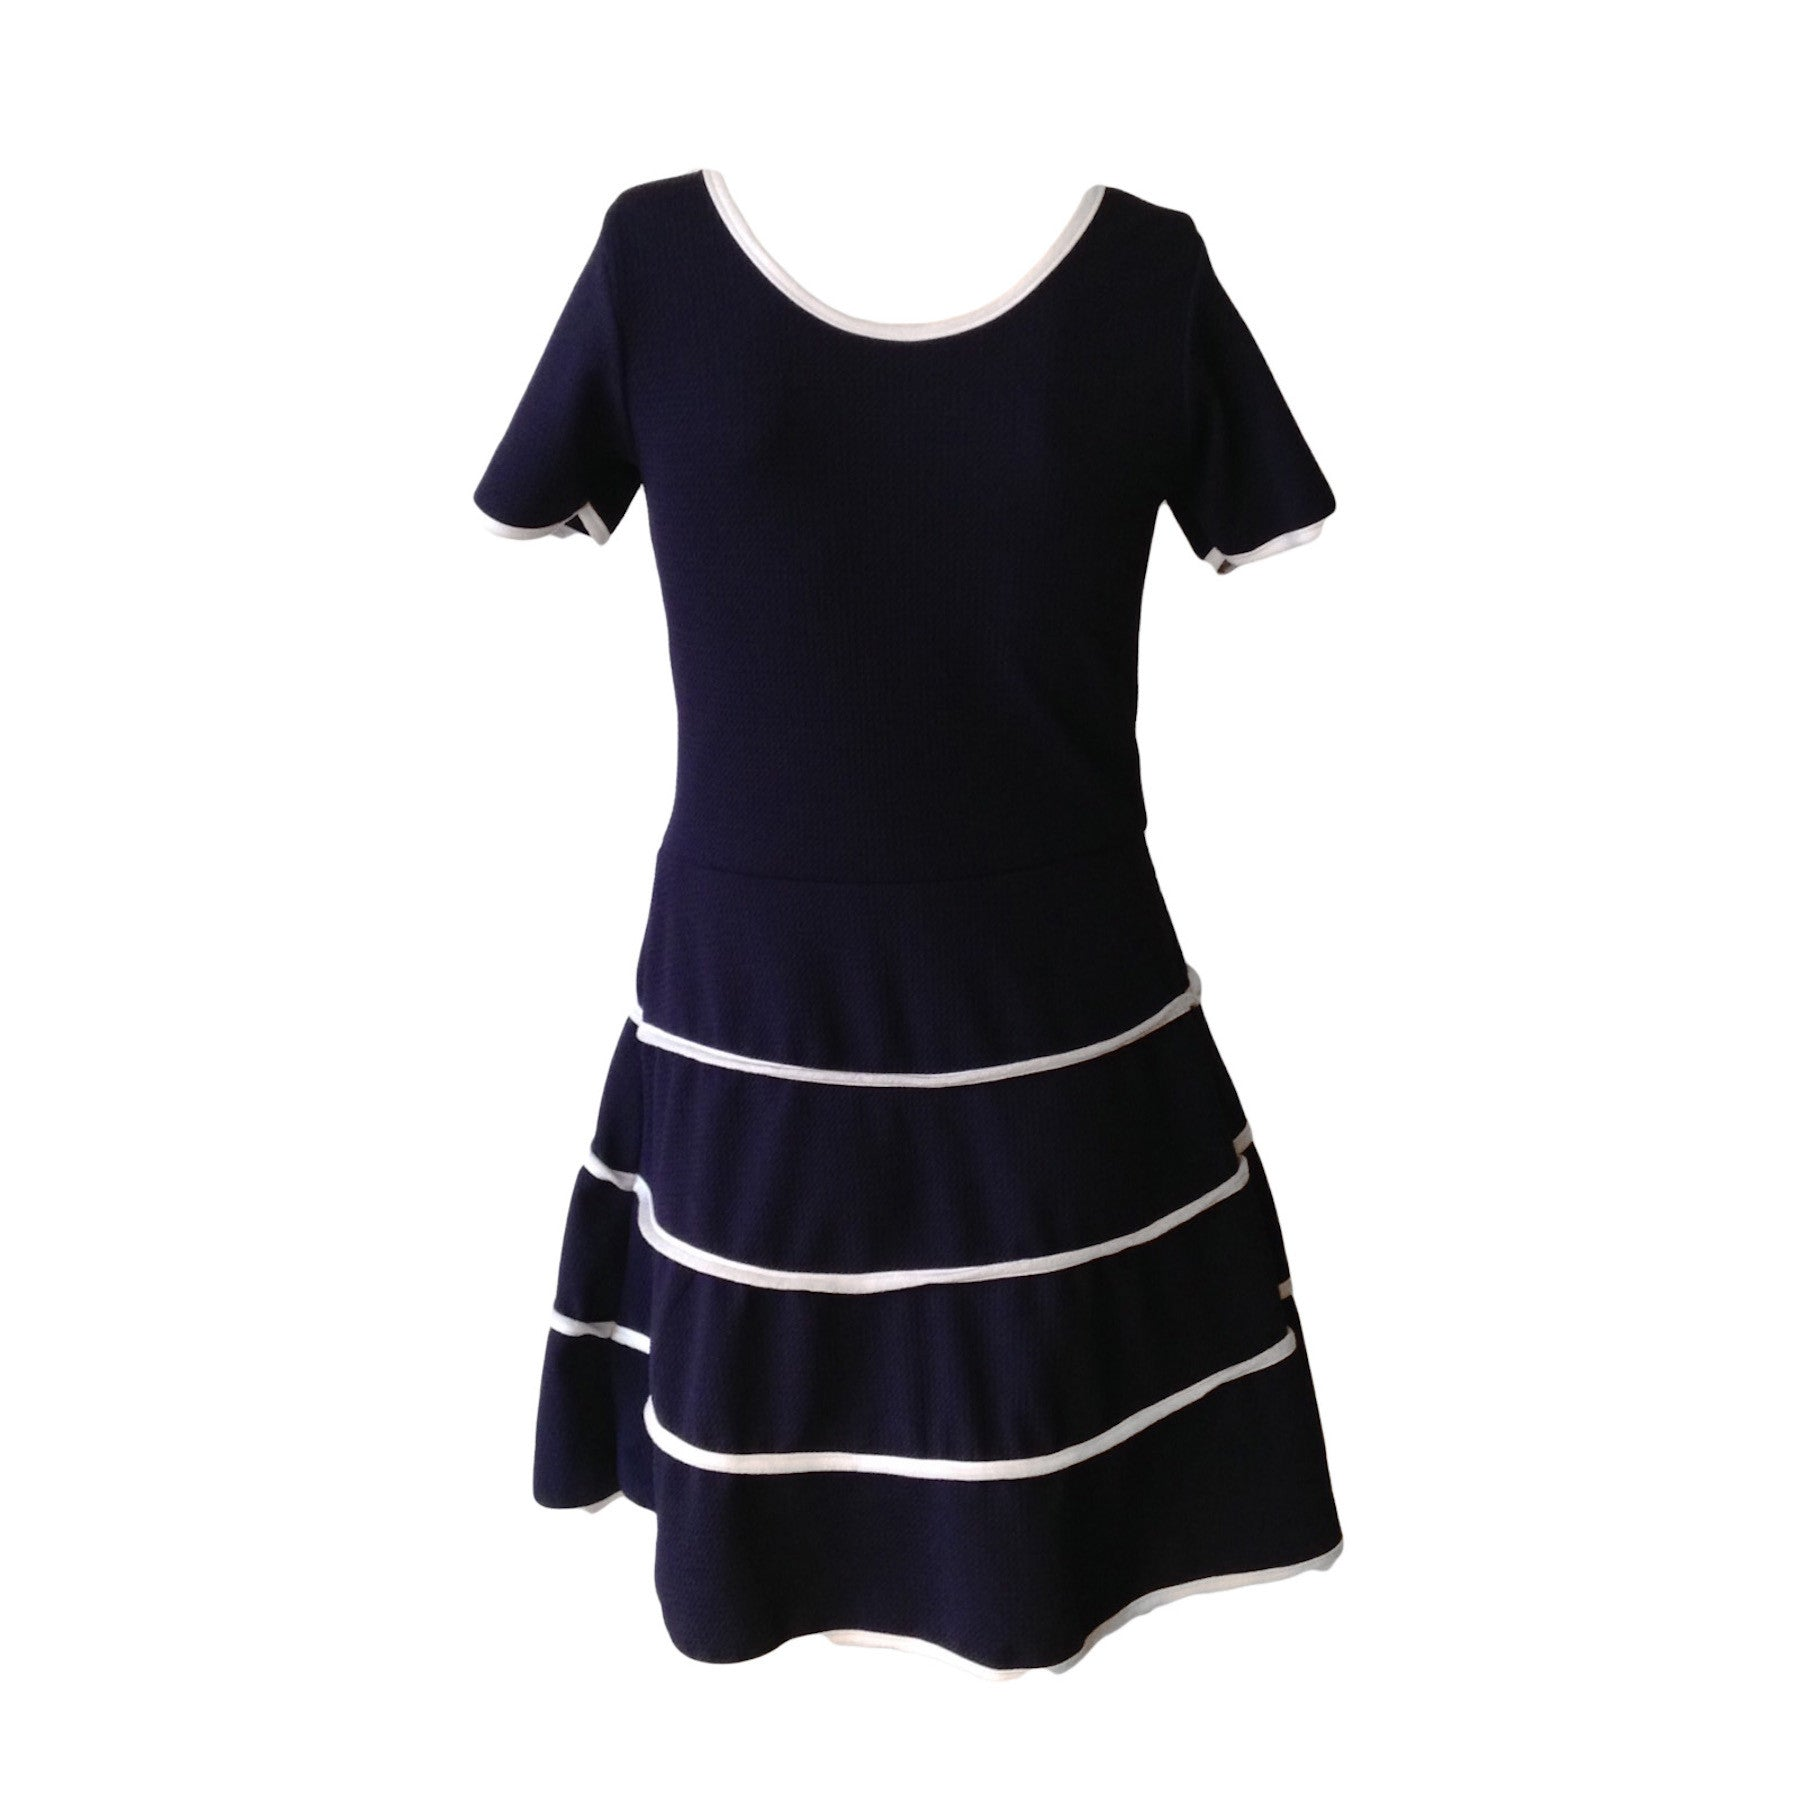 We love this Parisian Sailor dress by New York label Cheryl Creations.The navy and white piping combo makes it elegant and with good stretch it